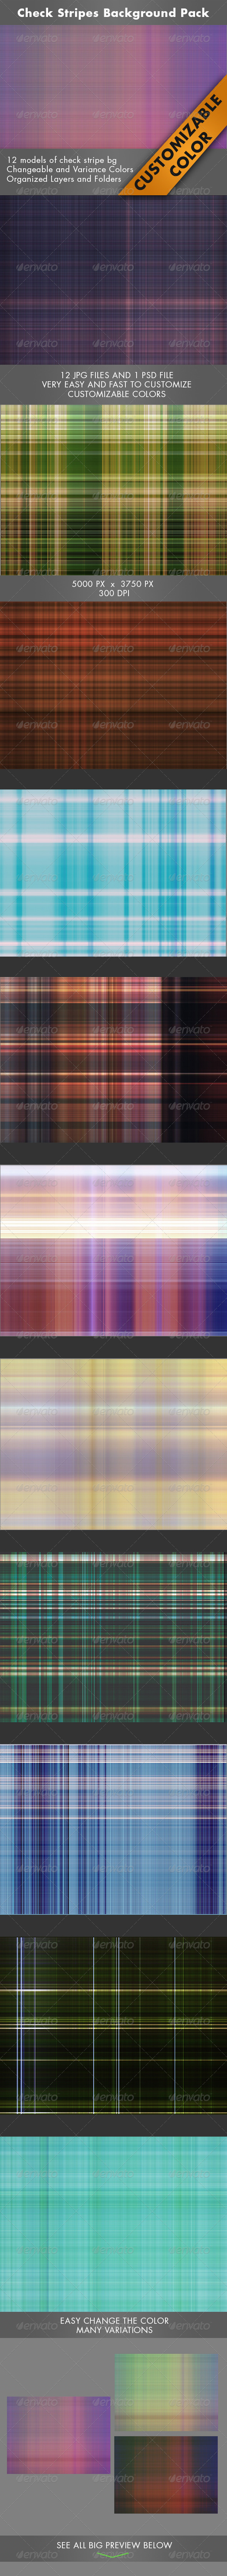 GraphicRiver Check Stripes Background 7132391